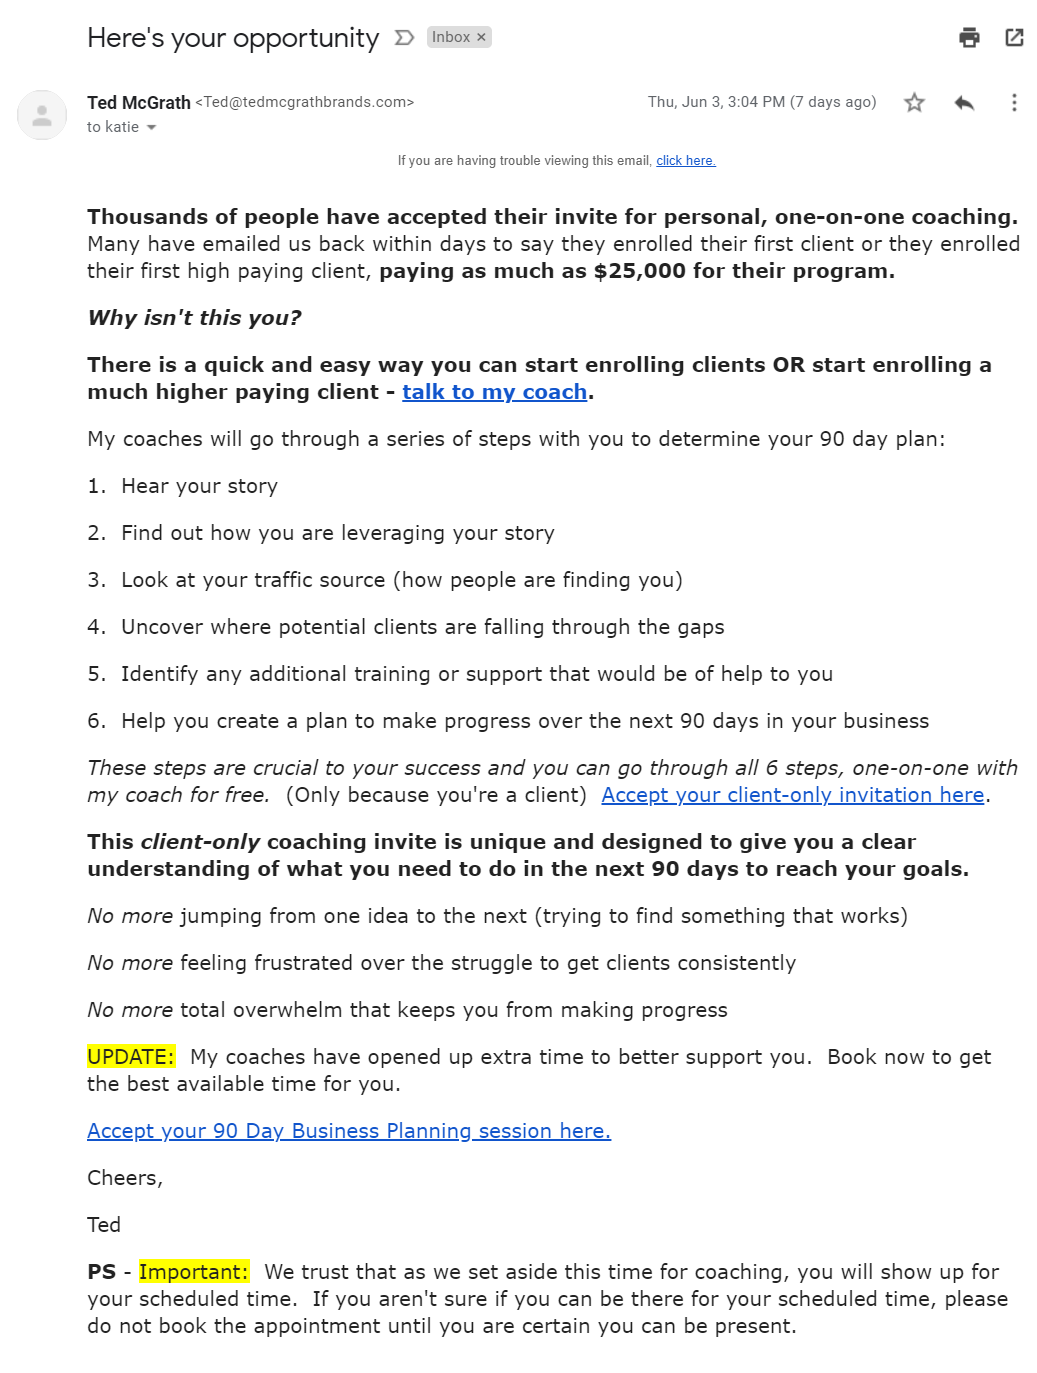 Promotional text based email from Ted McGrath